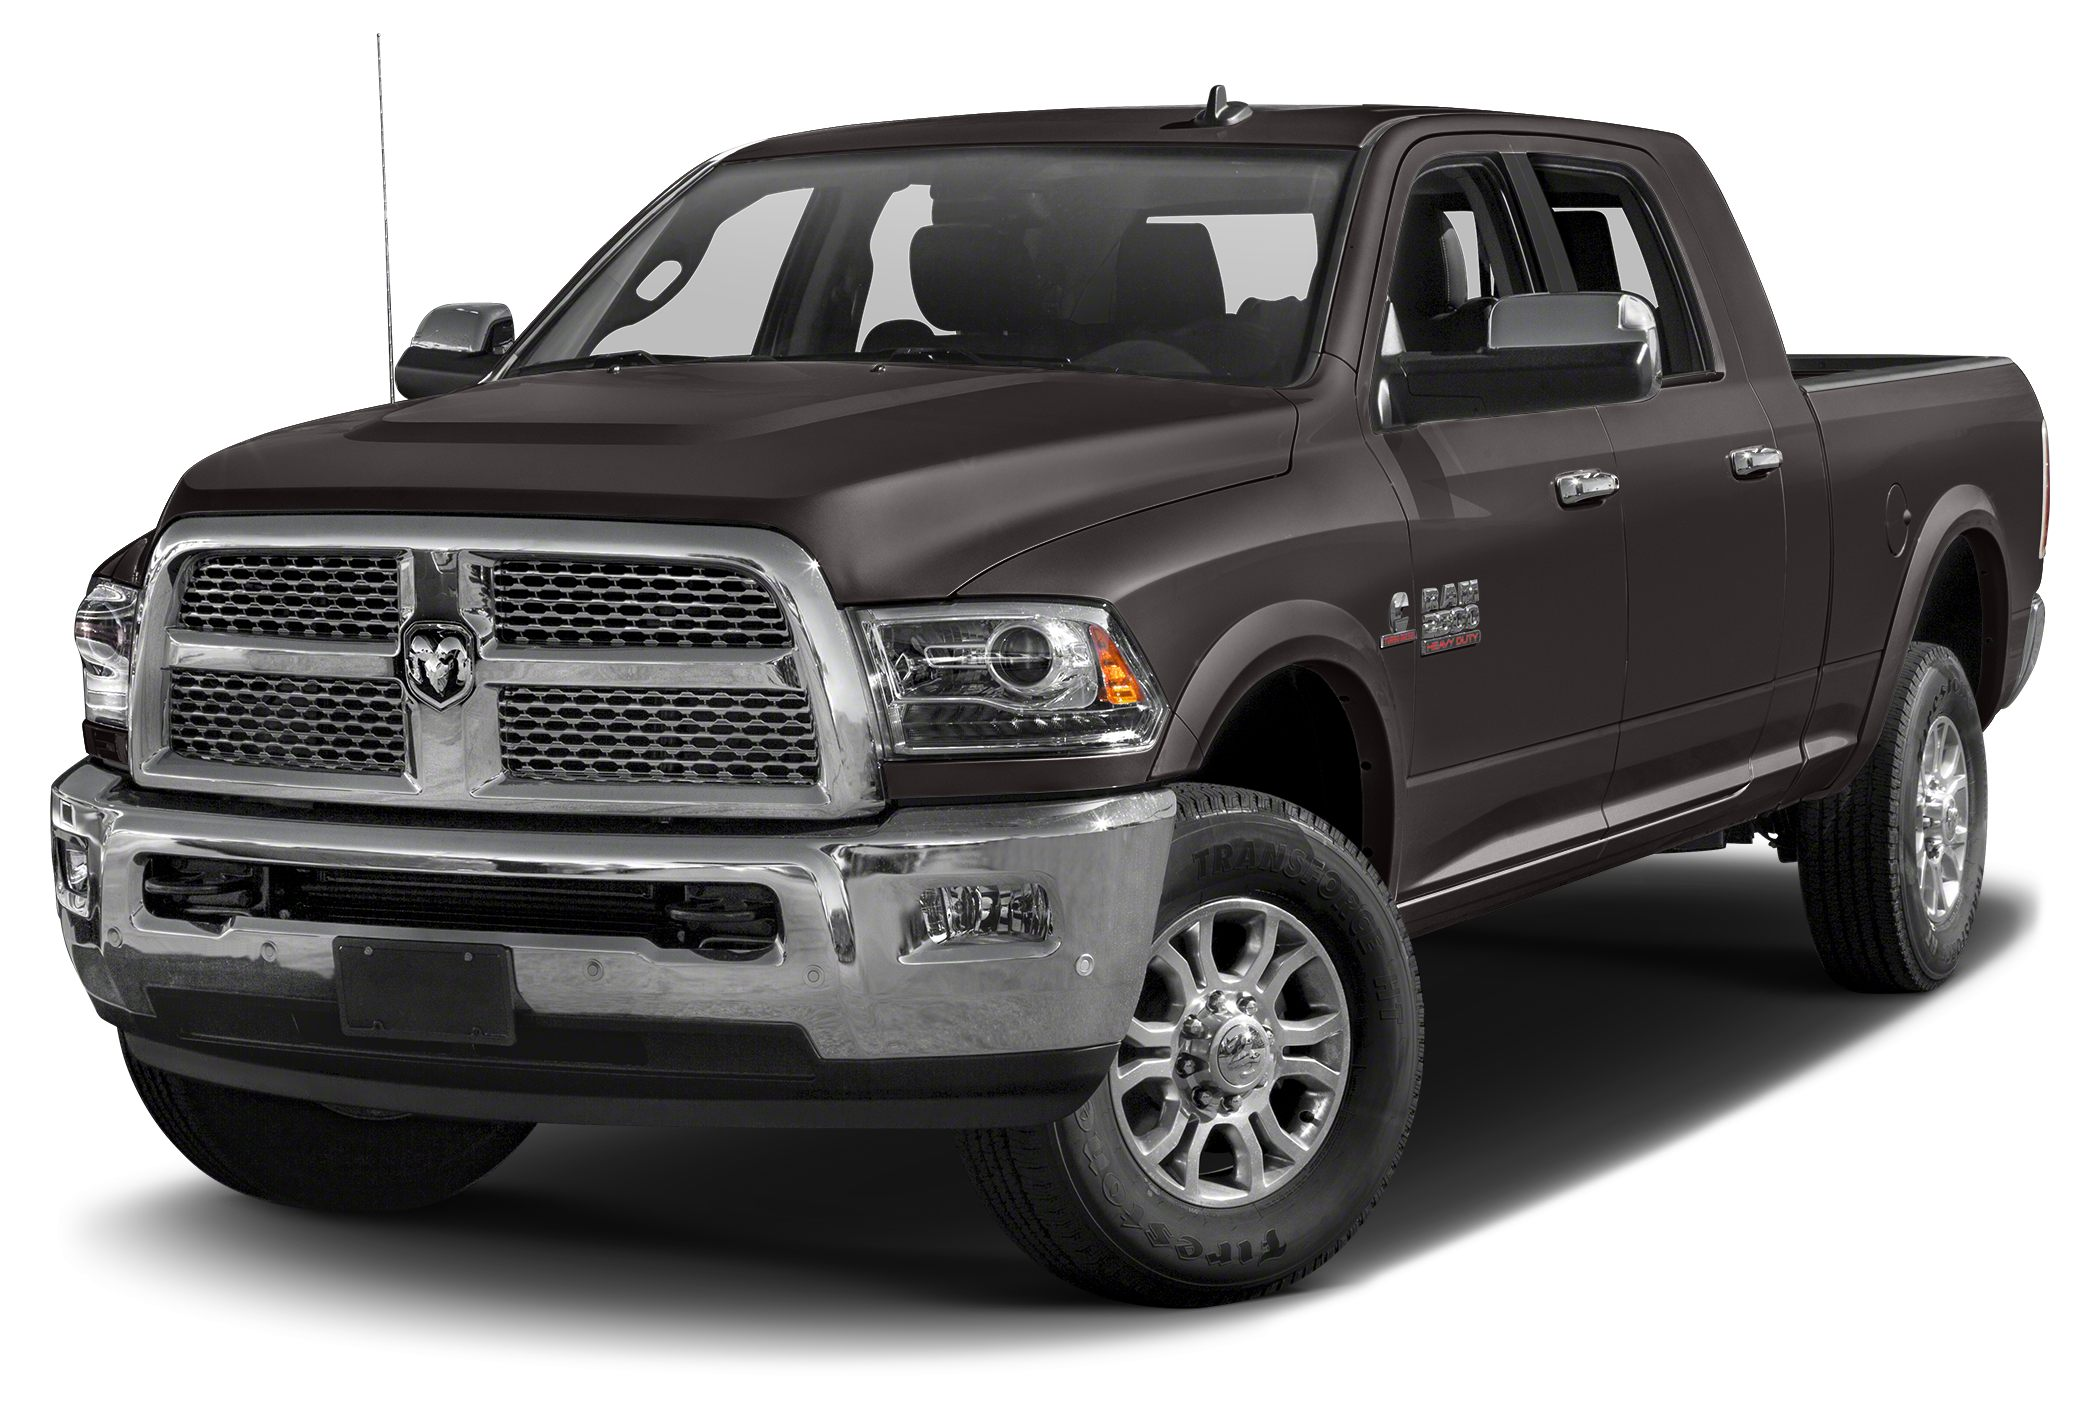 2017 RAM 2500 Laramie This really is a great vehicle for your active lifestyle 4 Wheel Drive4